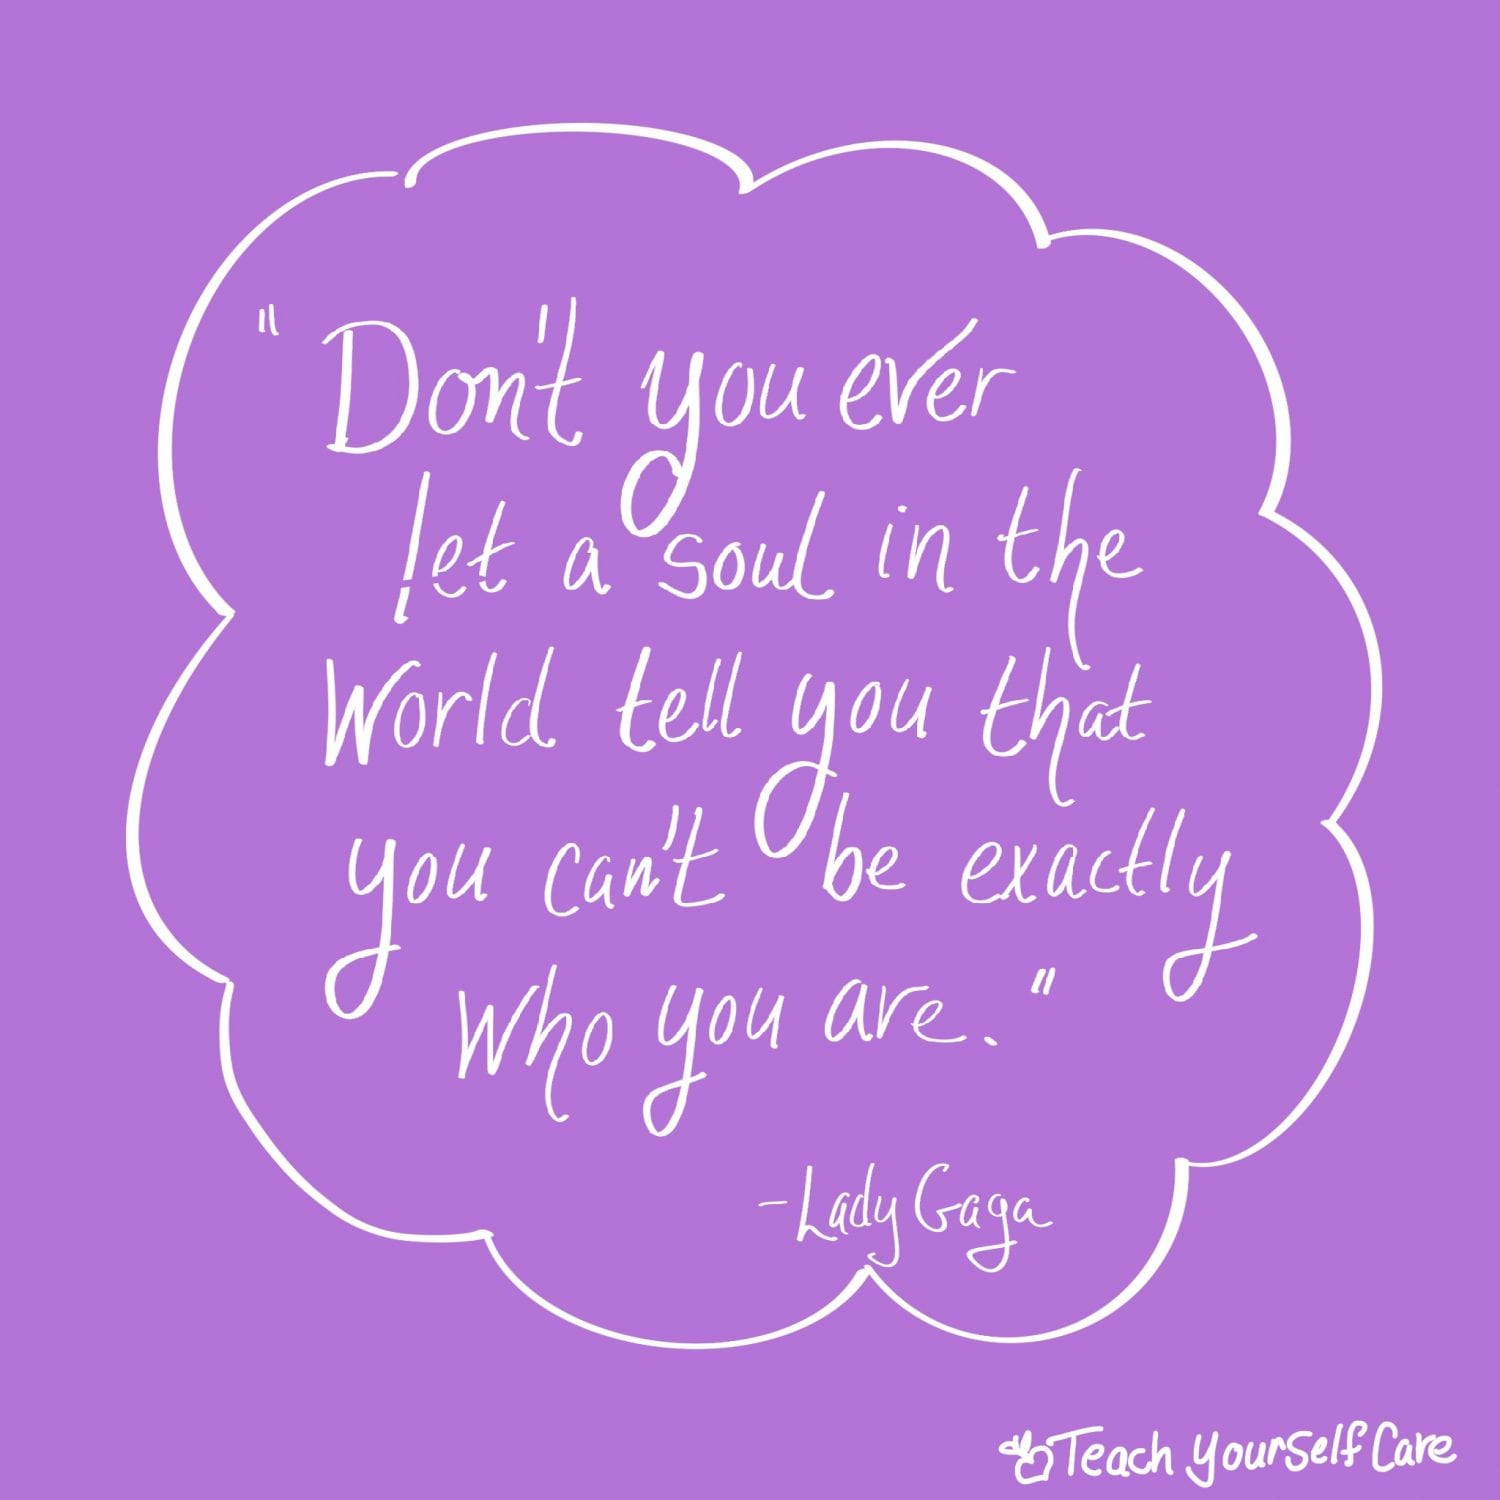 Don't you ever let a soul in the world tell you that you can't be exactly who you are.